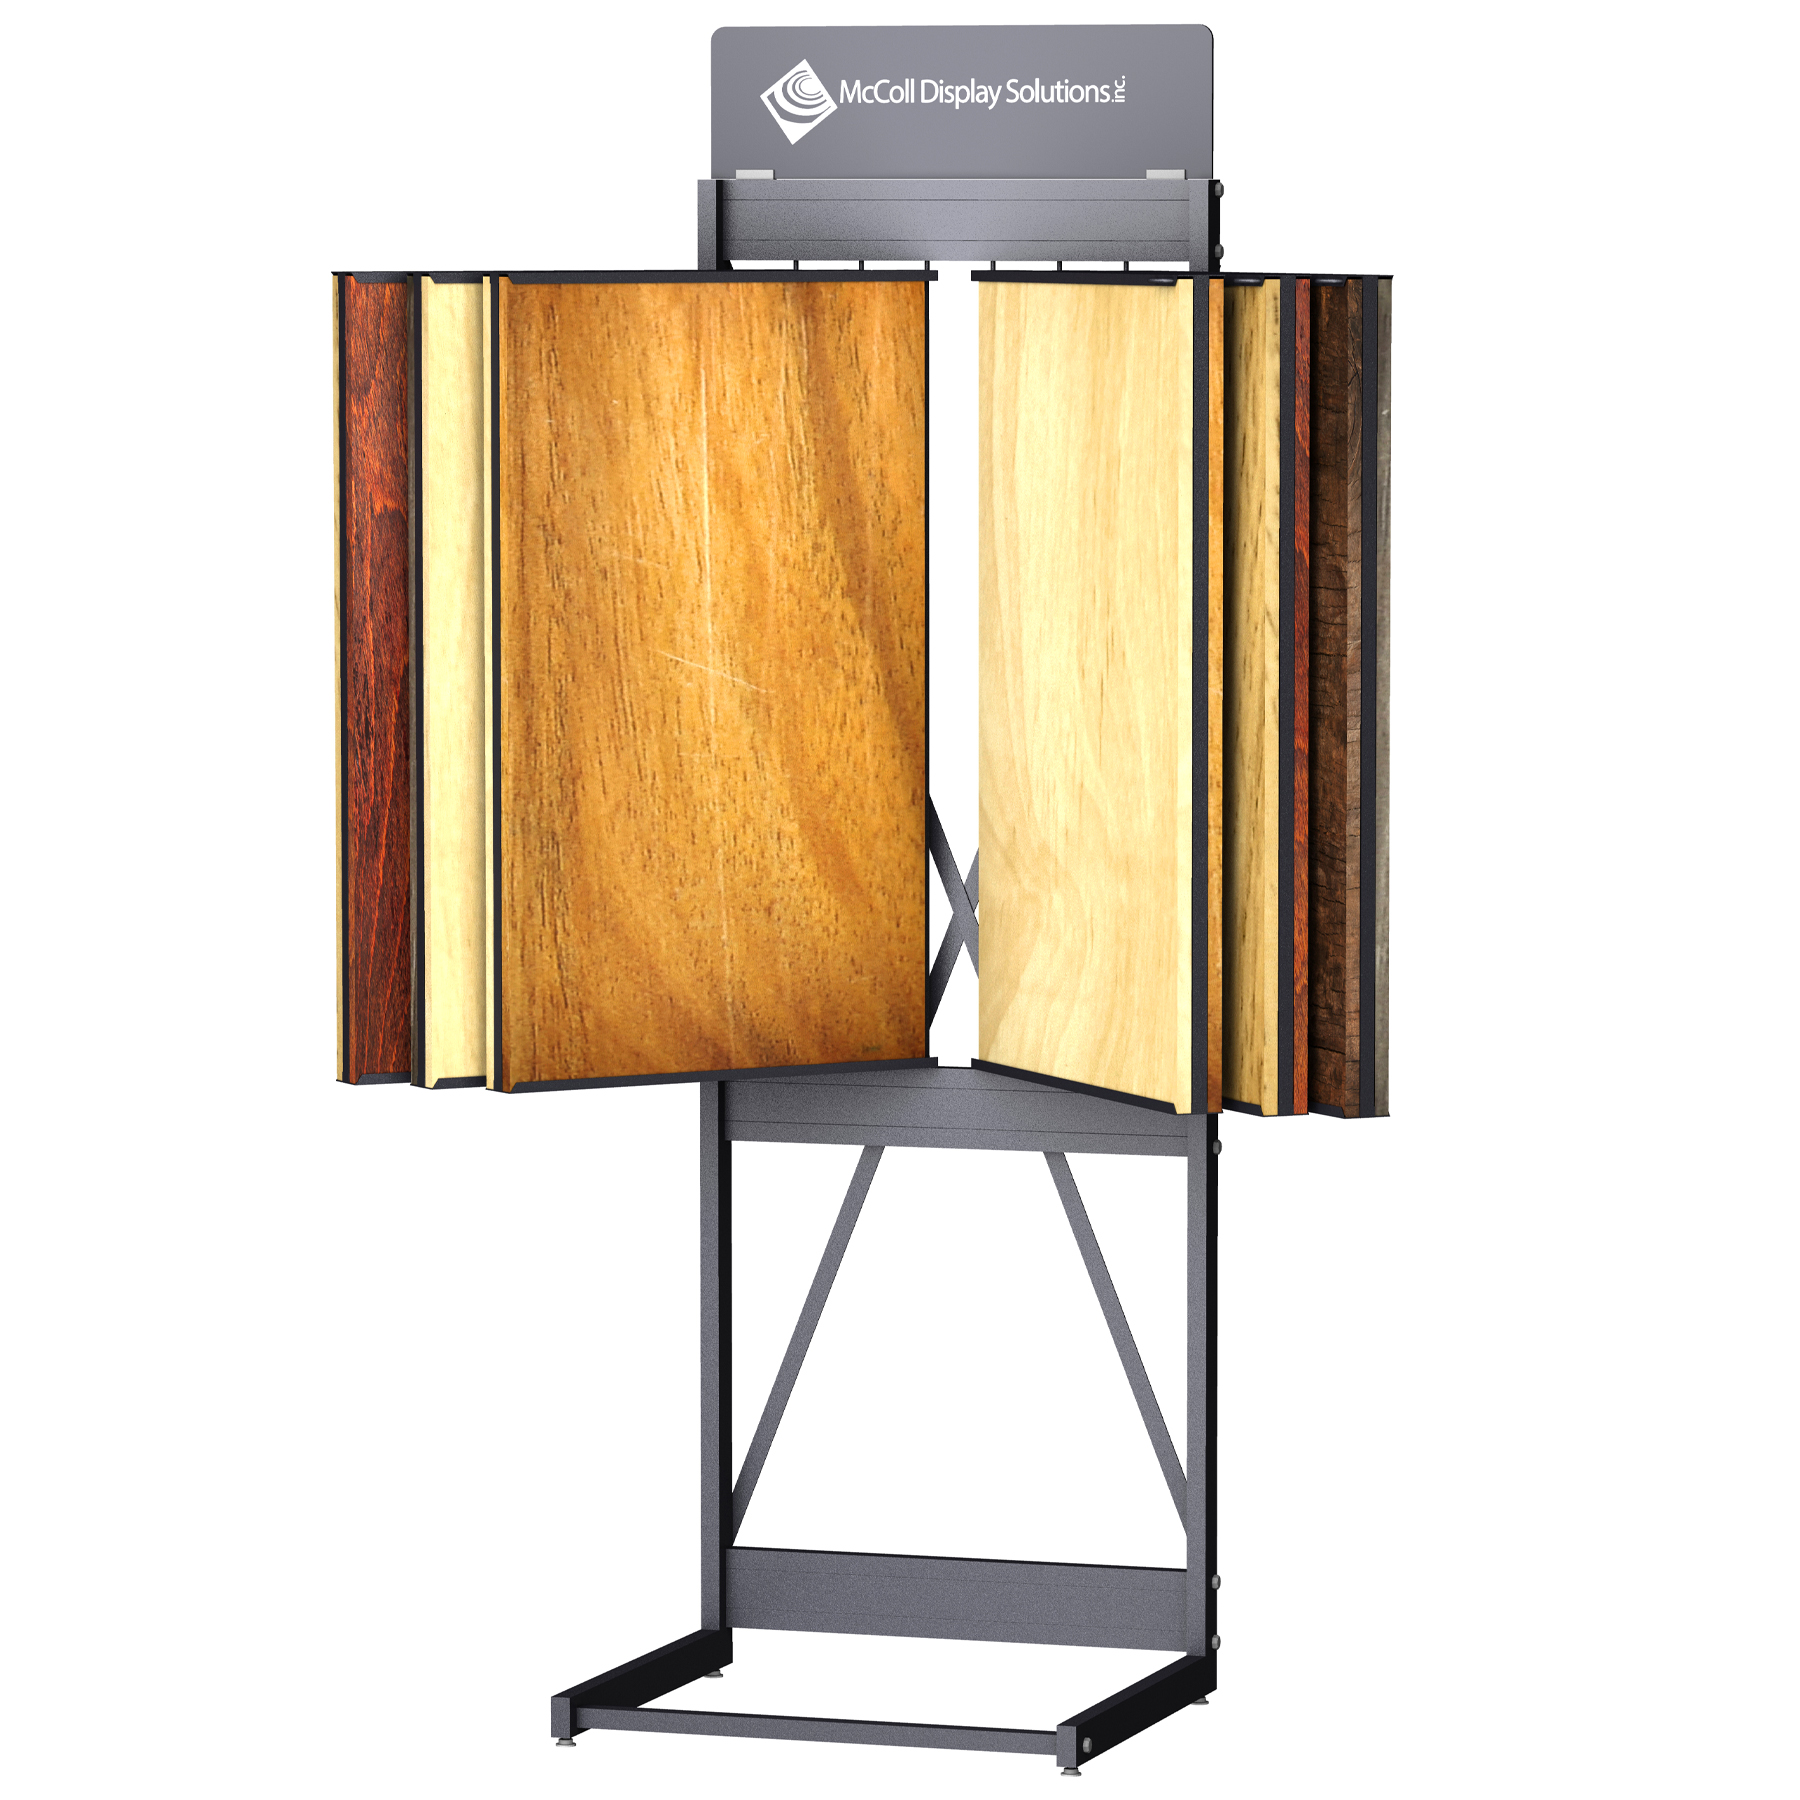 CD246 Wing Rack Tower Stand Channel System for Hardwood Laminate Reclaimed Wood Plank